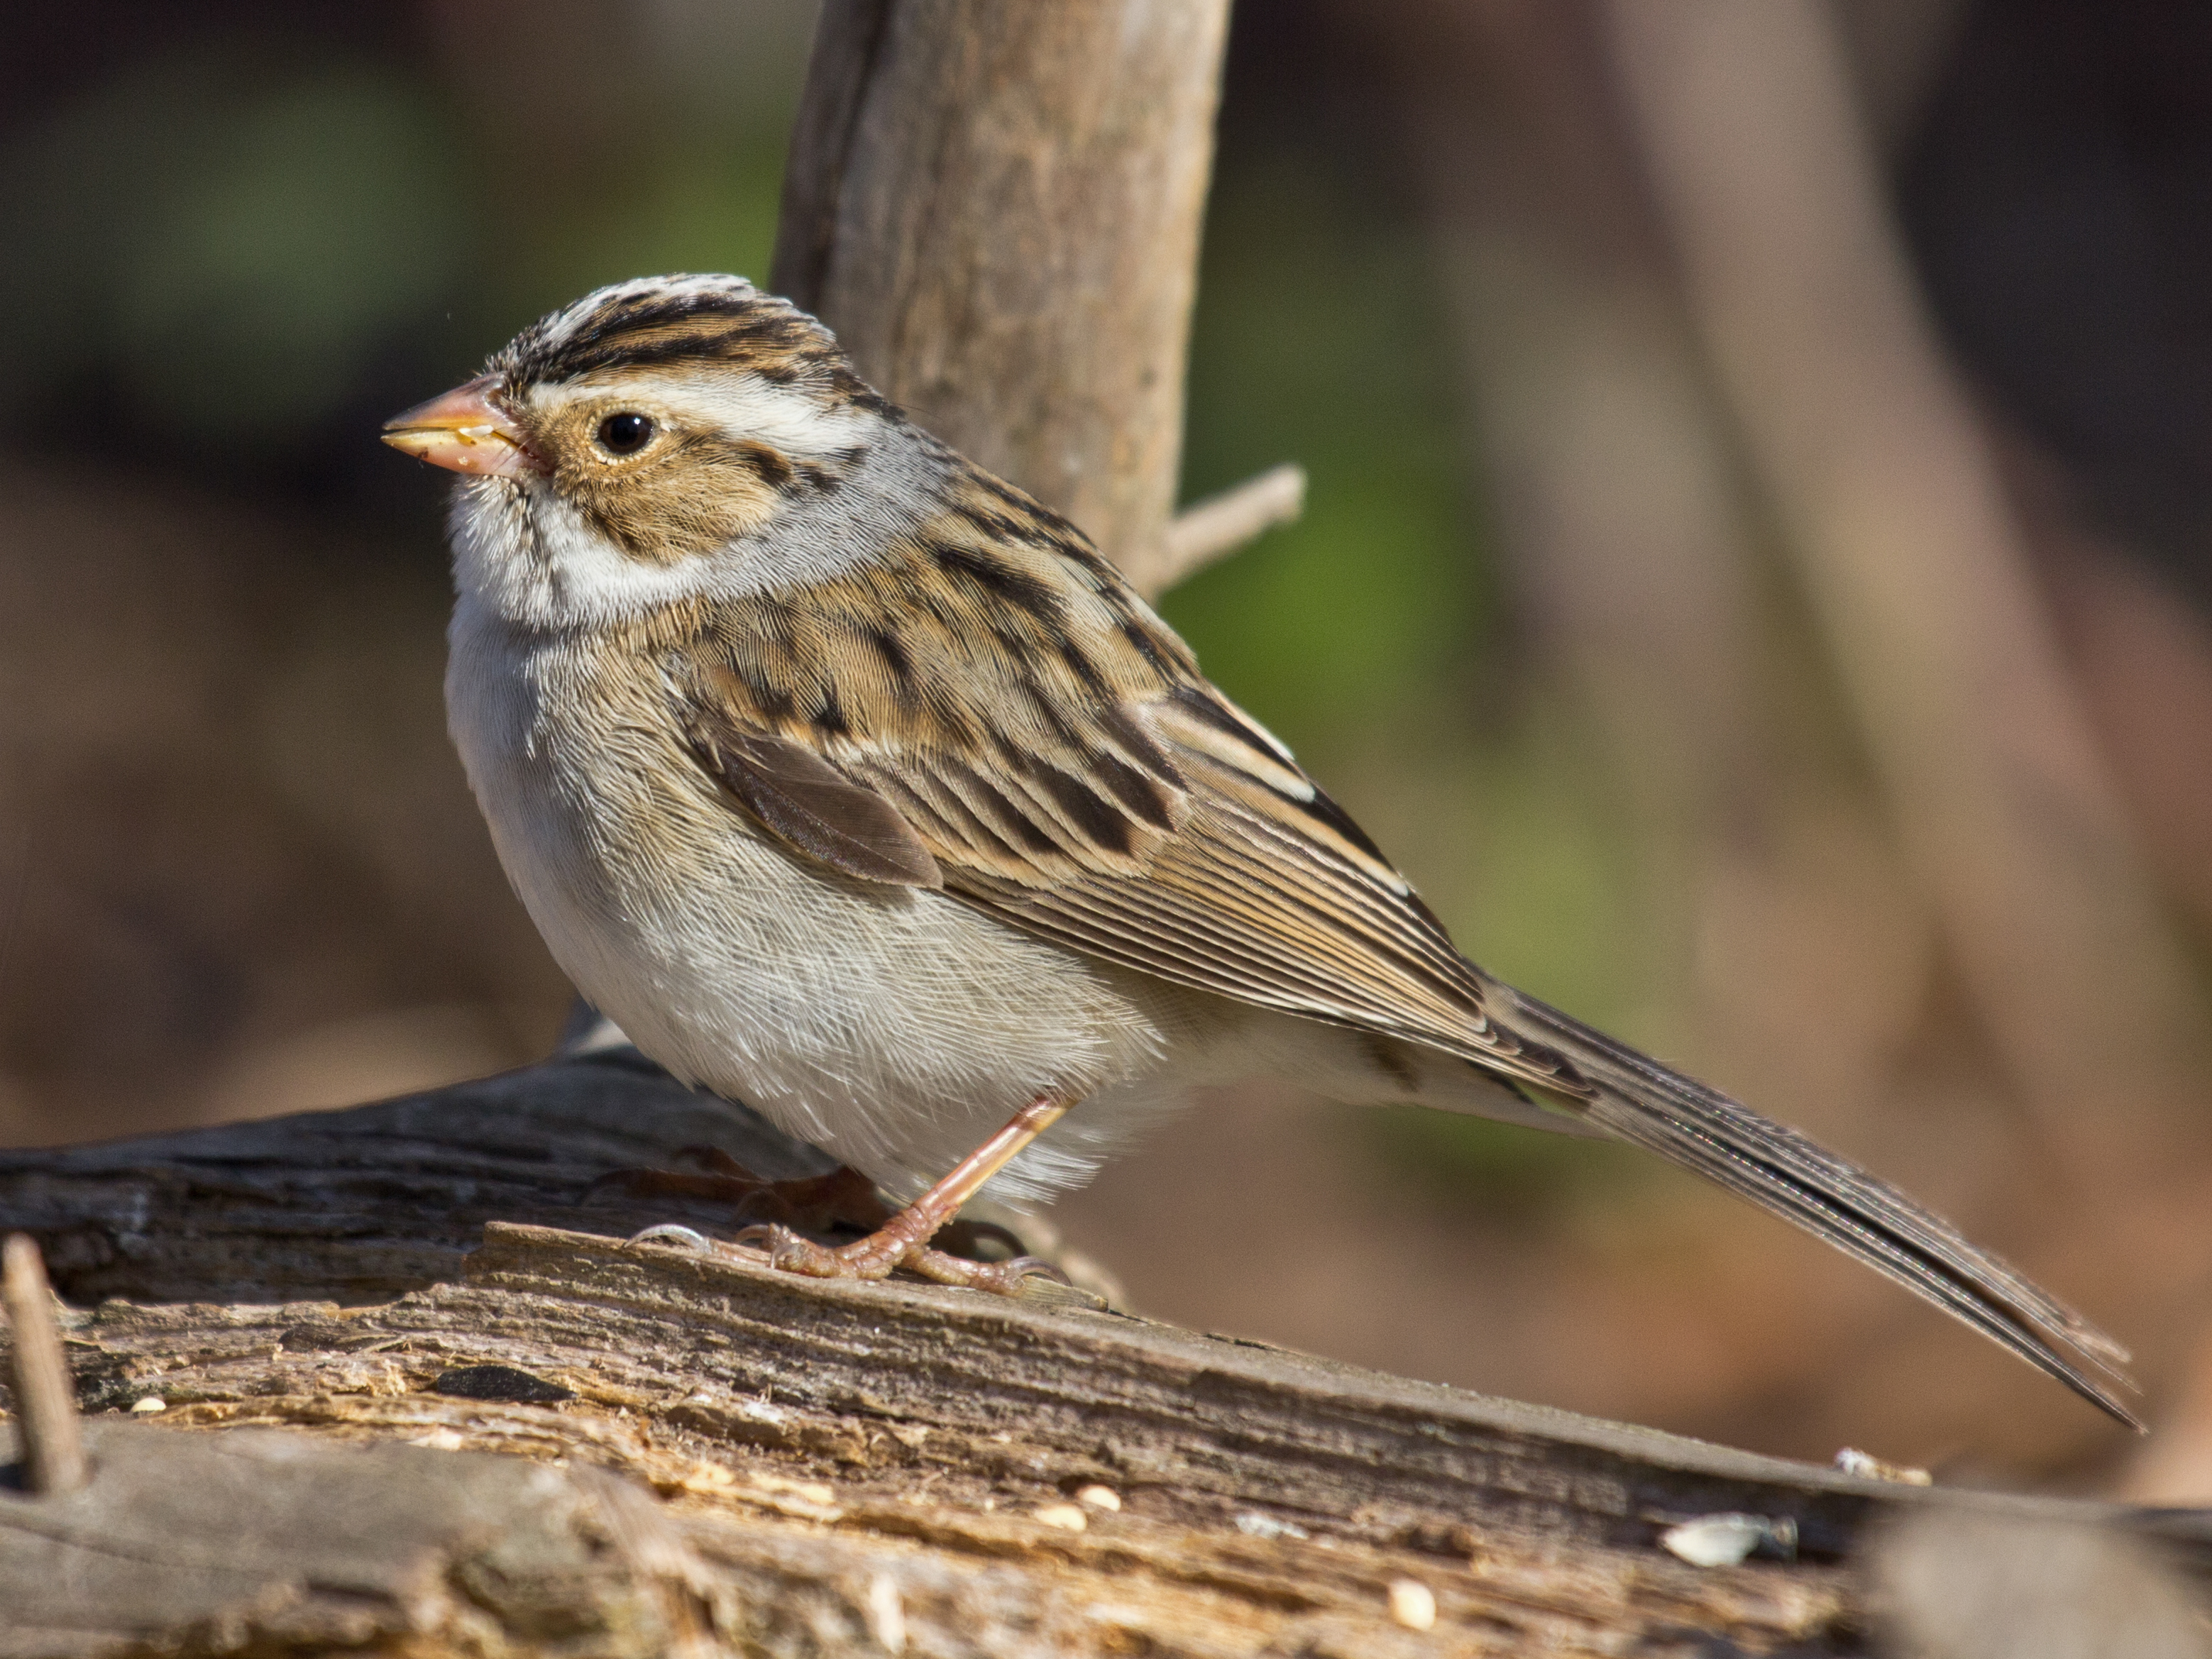 birds capitalize on weather patterns during epic migrations